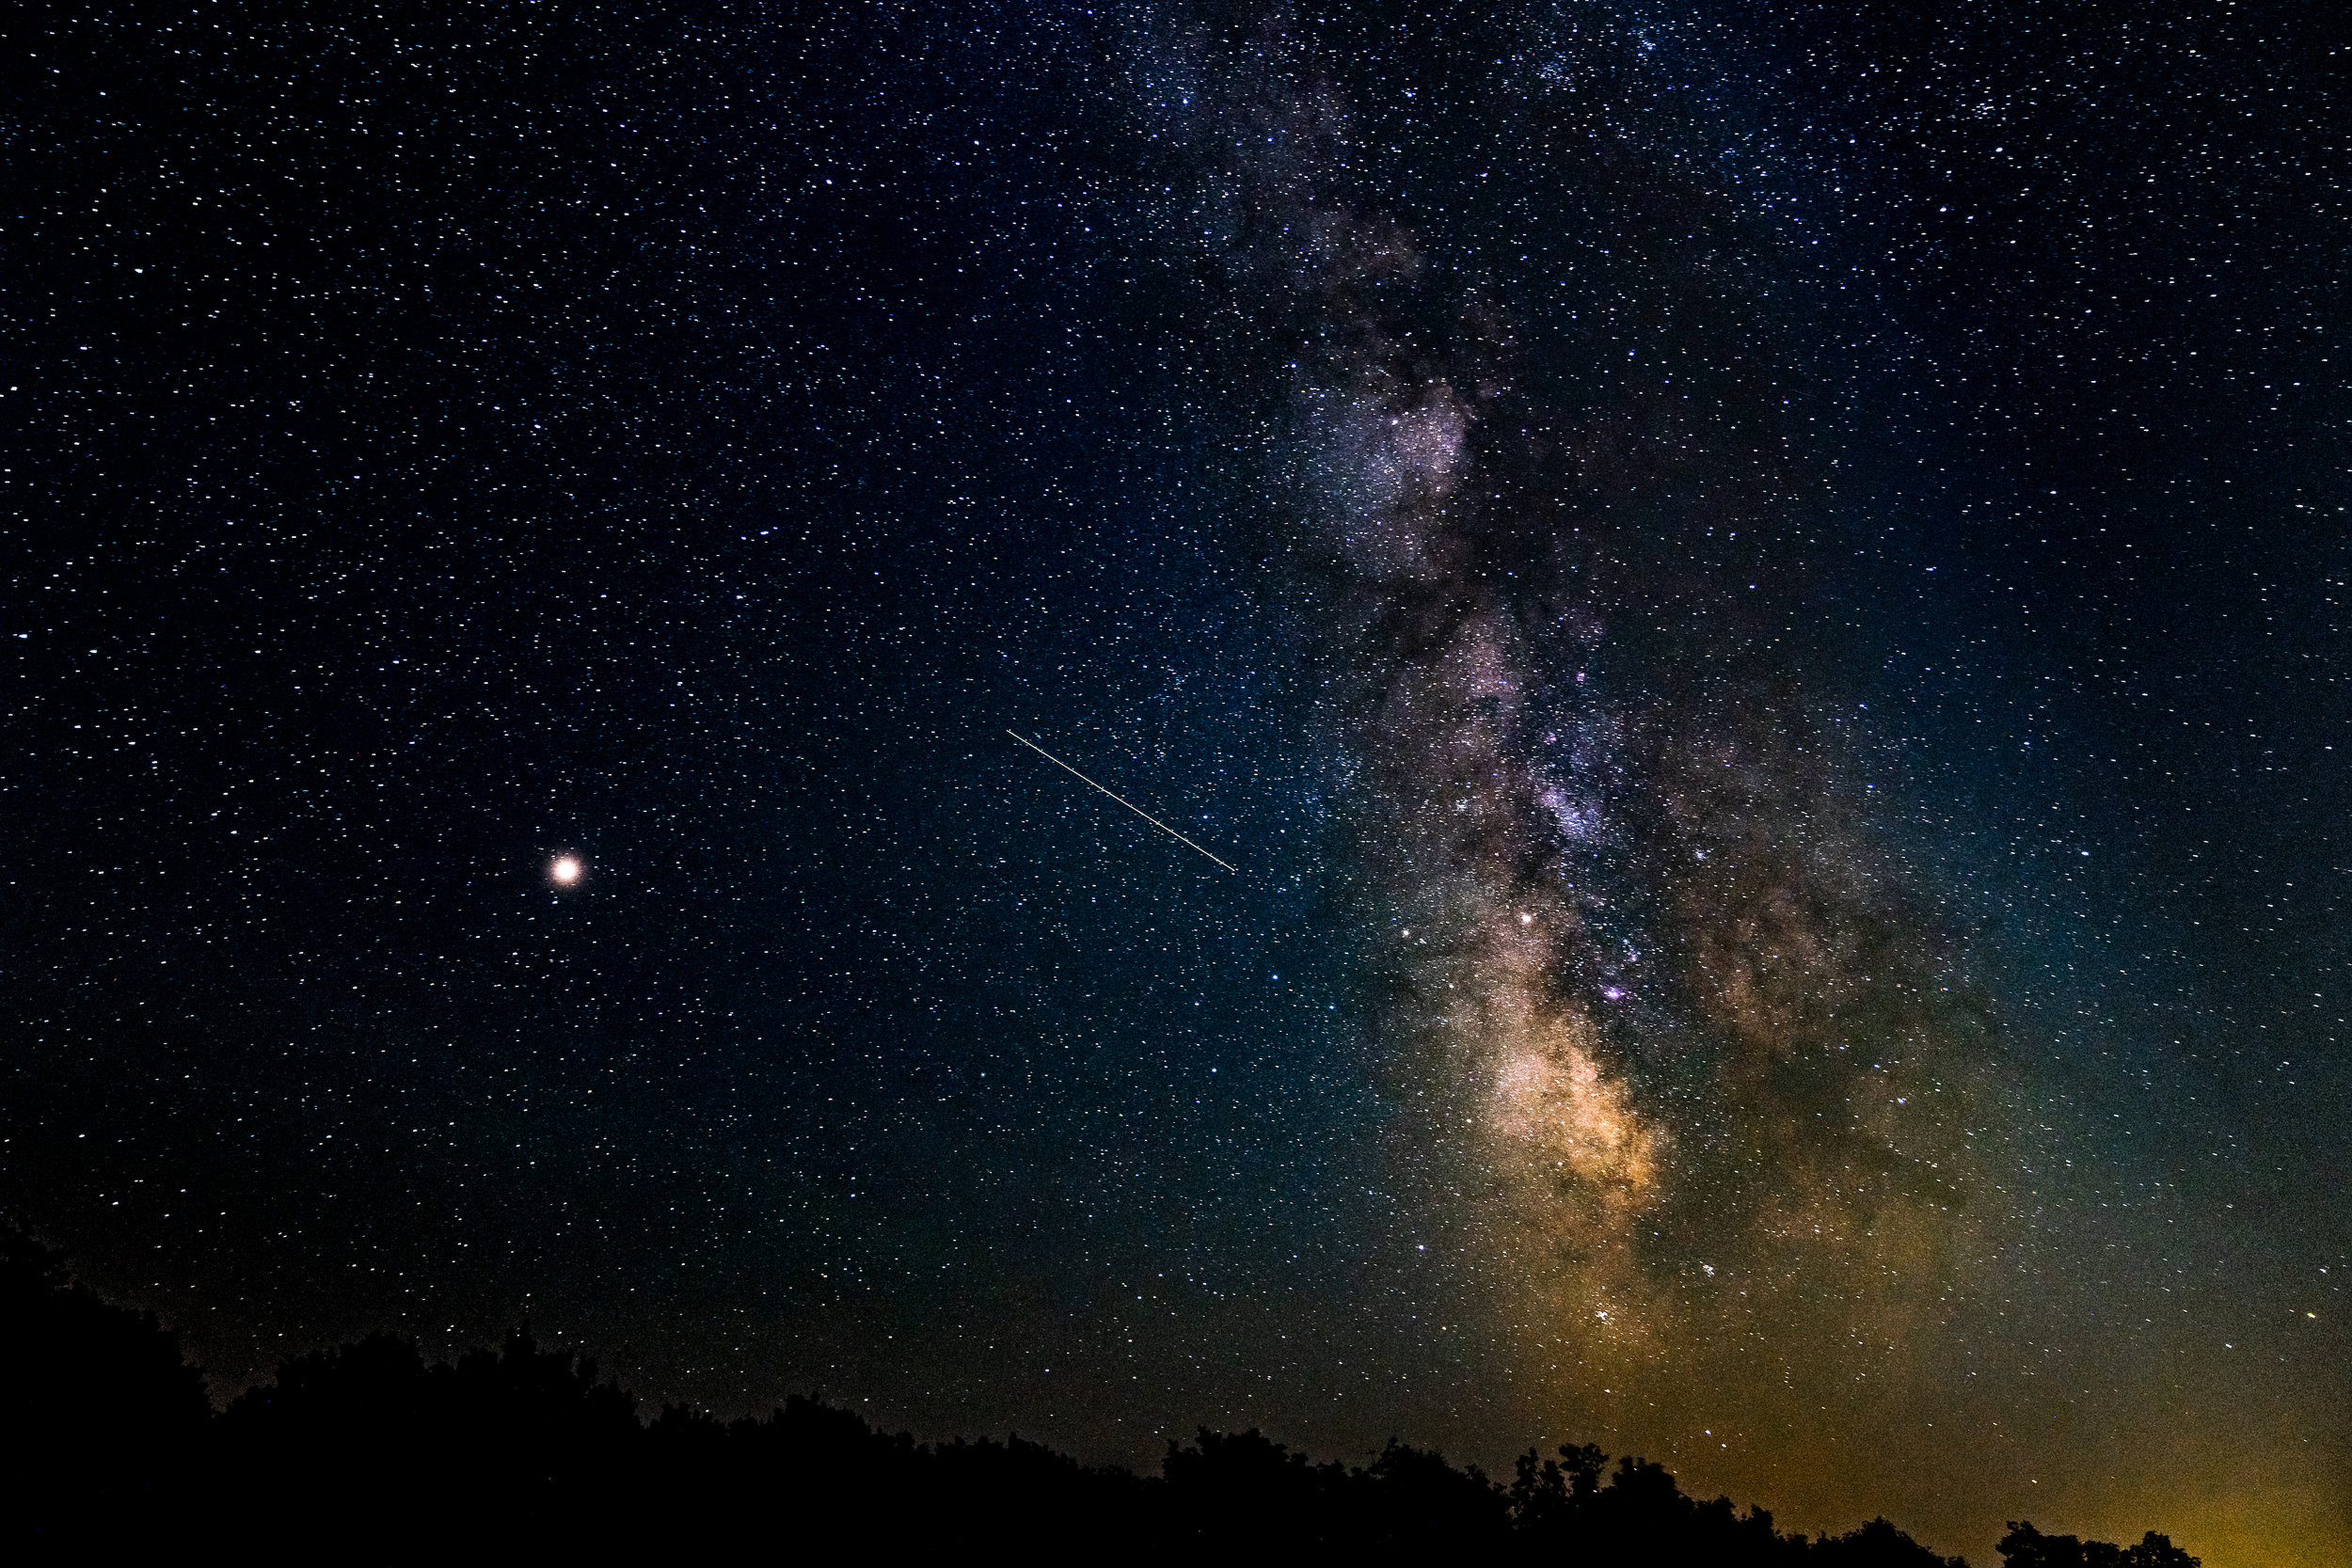 The Milky Way with a shooting star and Saturn over Shenandoah National Park.